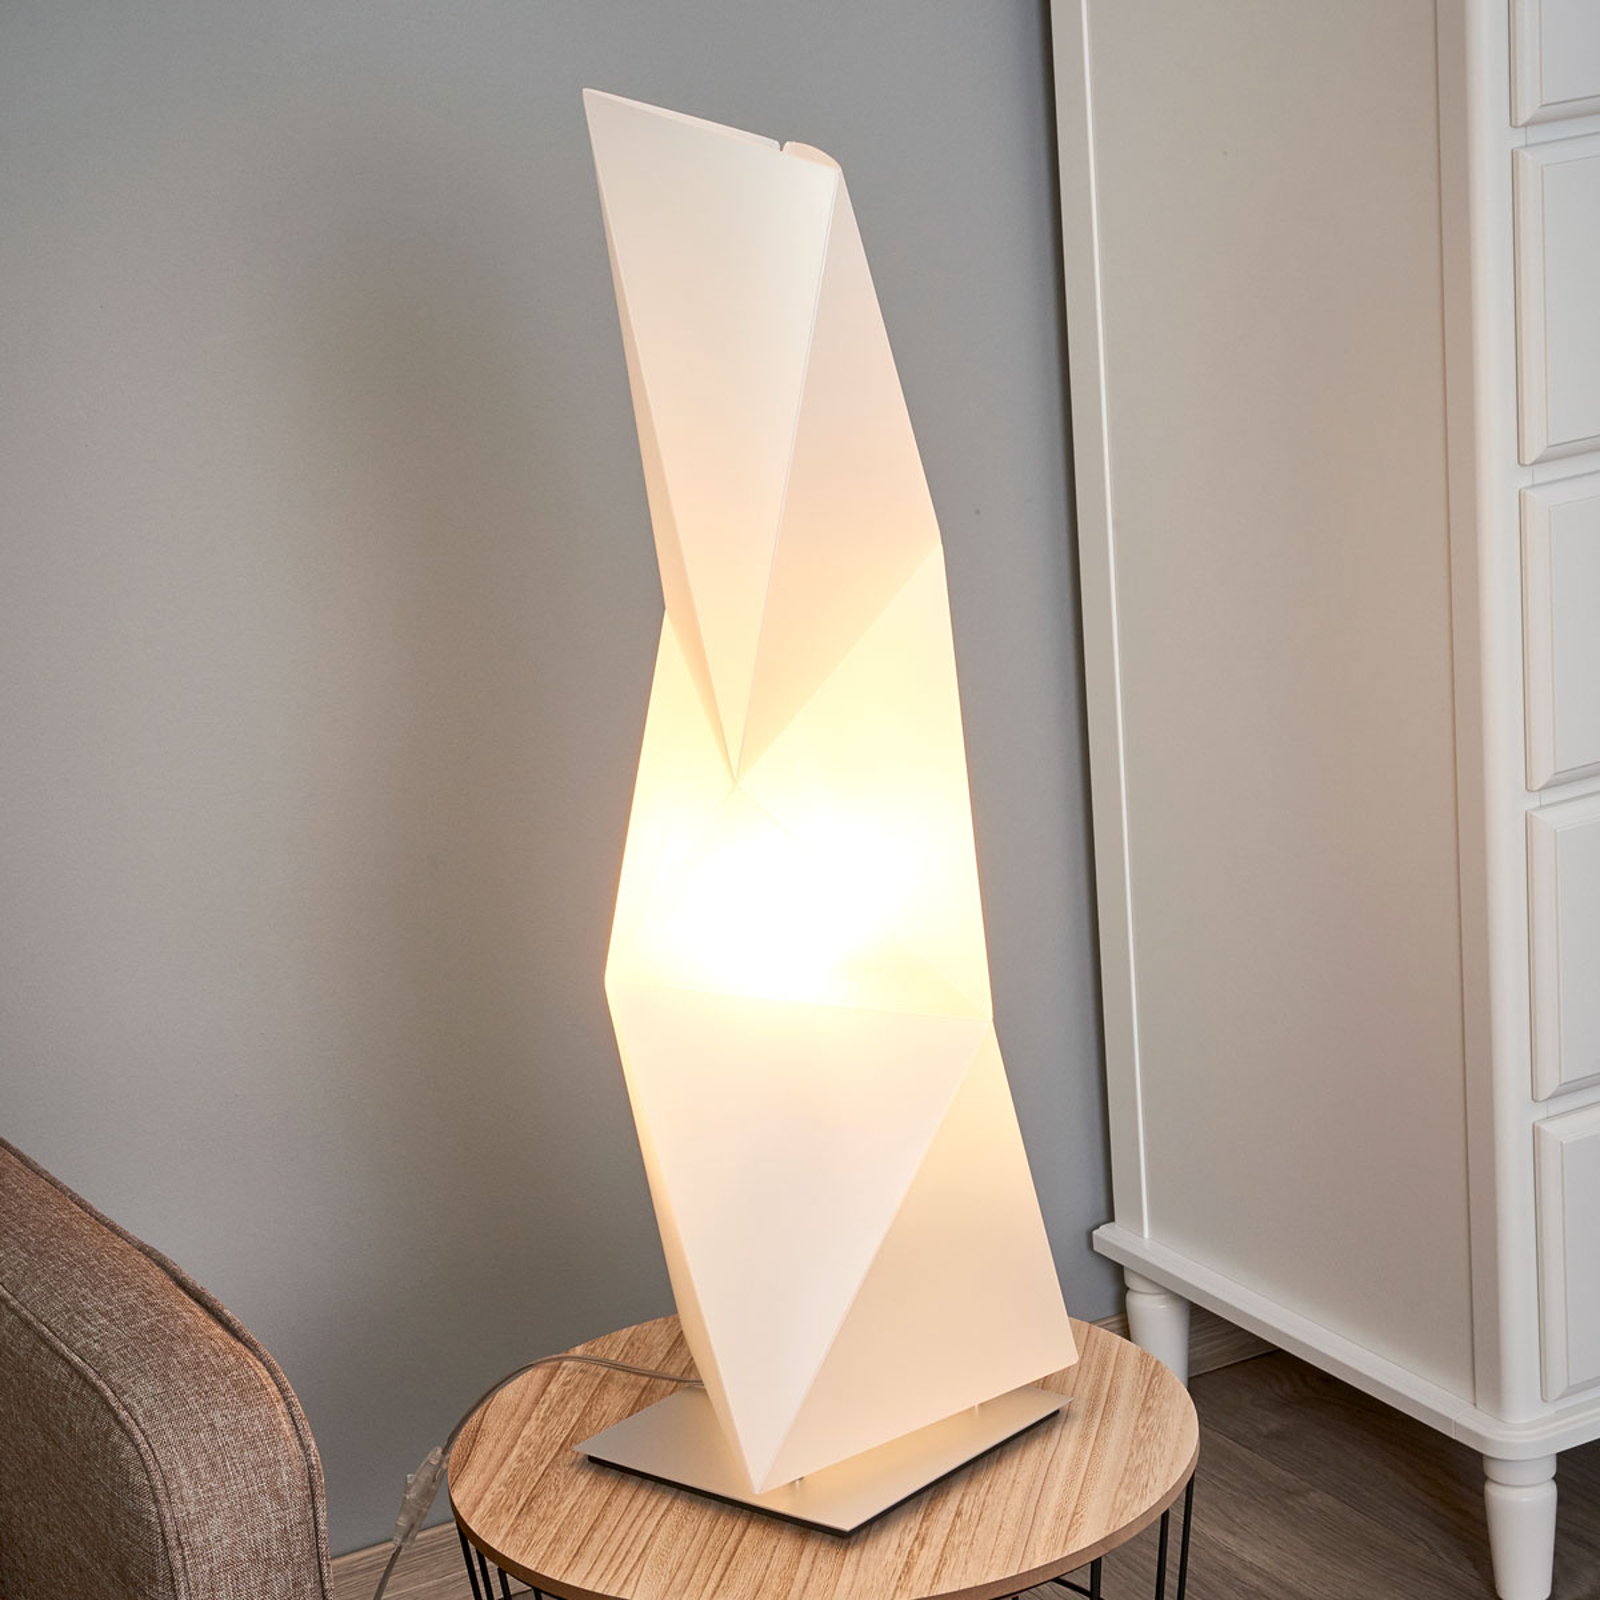 Slamp Diamond - design-tafellamp, 72 cm